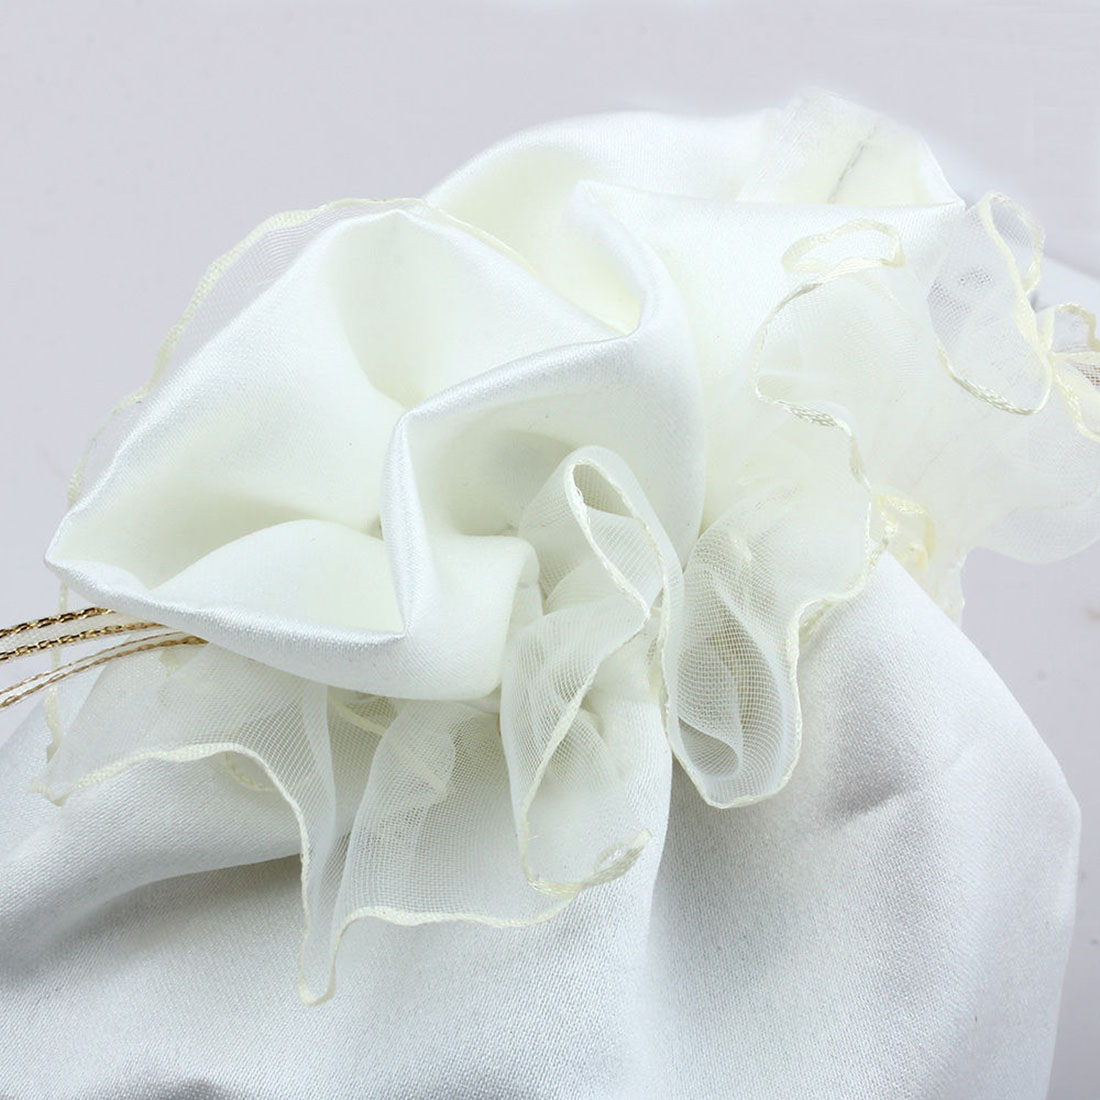 43b1d377b954 Fashion Beautiful Ivory White Satin Wedding Bride Bridesmaid Dolly Candy  Bag High Quality Handbag Wholesale-in Gift Bags   Wrapping Supplies from  Home ...